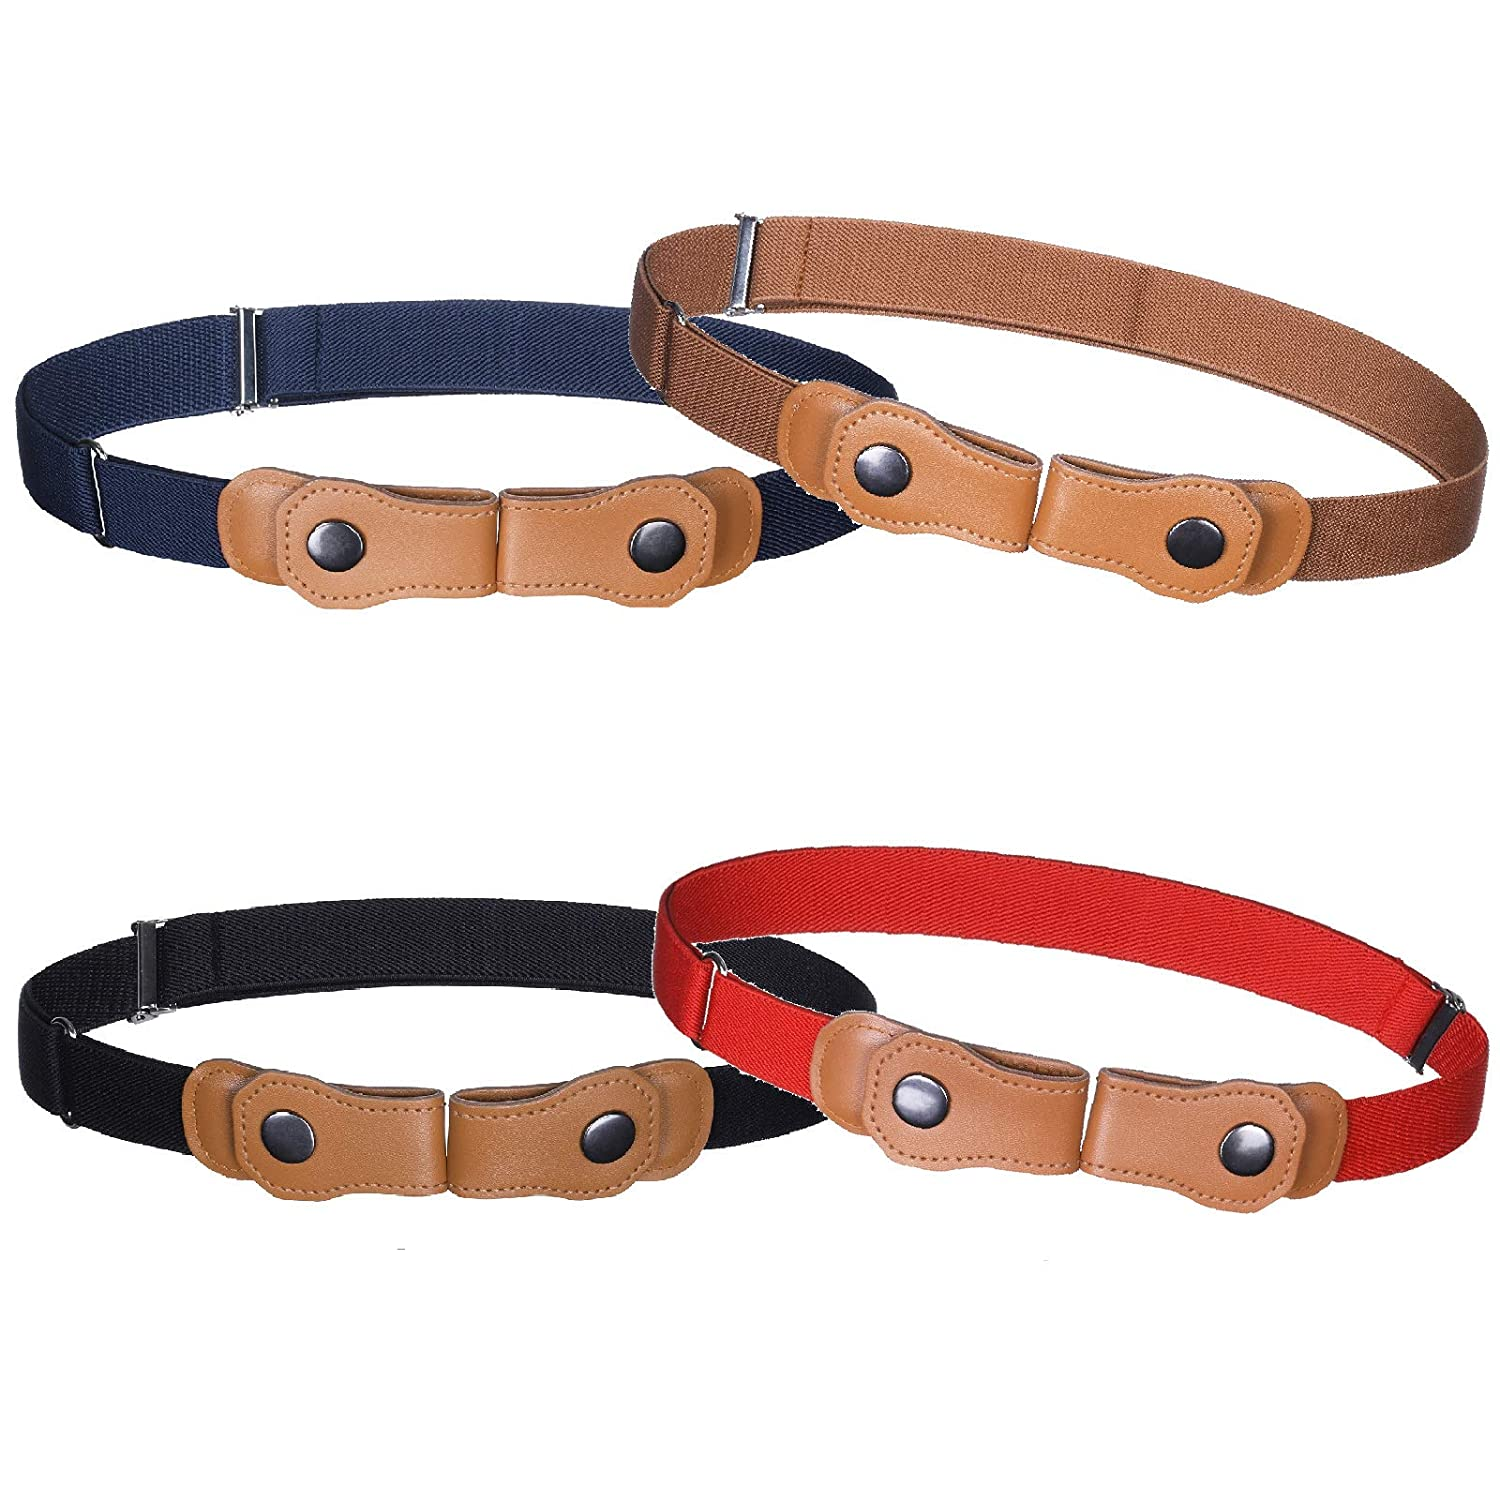 Boys Girls No Buckle Belt 4PCS Toddlers Invisible Belt For Boys /& Girls Stretch Waist Belt Up to 30 Inches